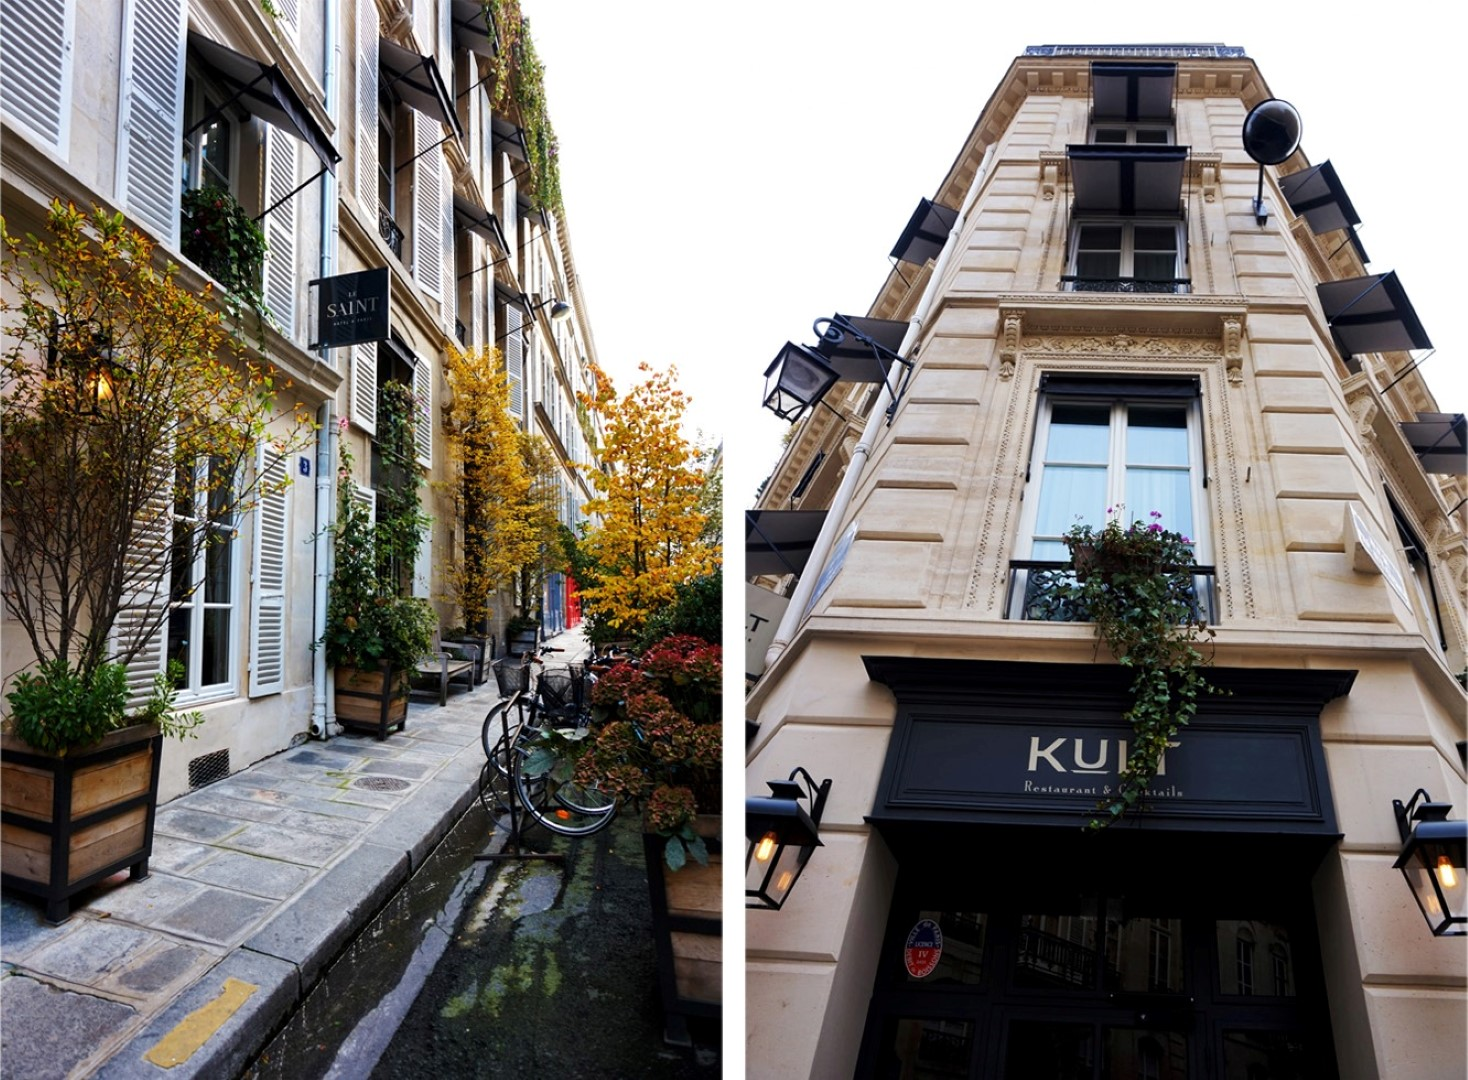 Le KULT - Restaurant paris 6e